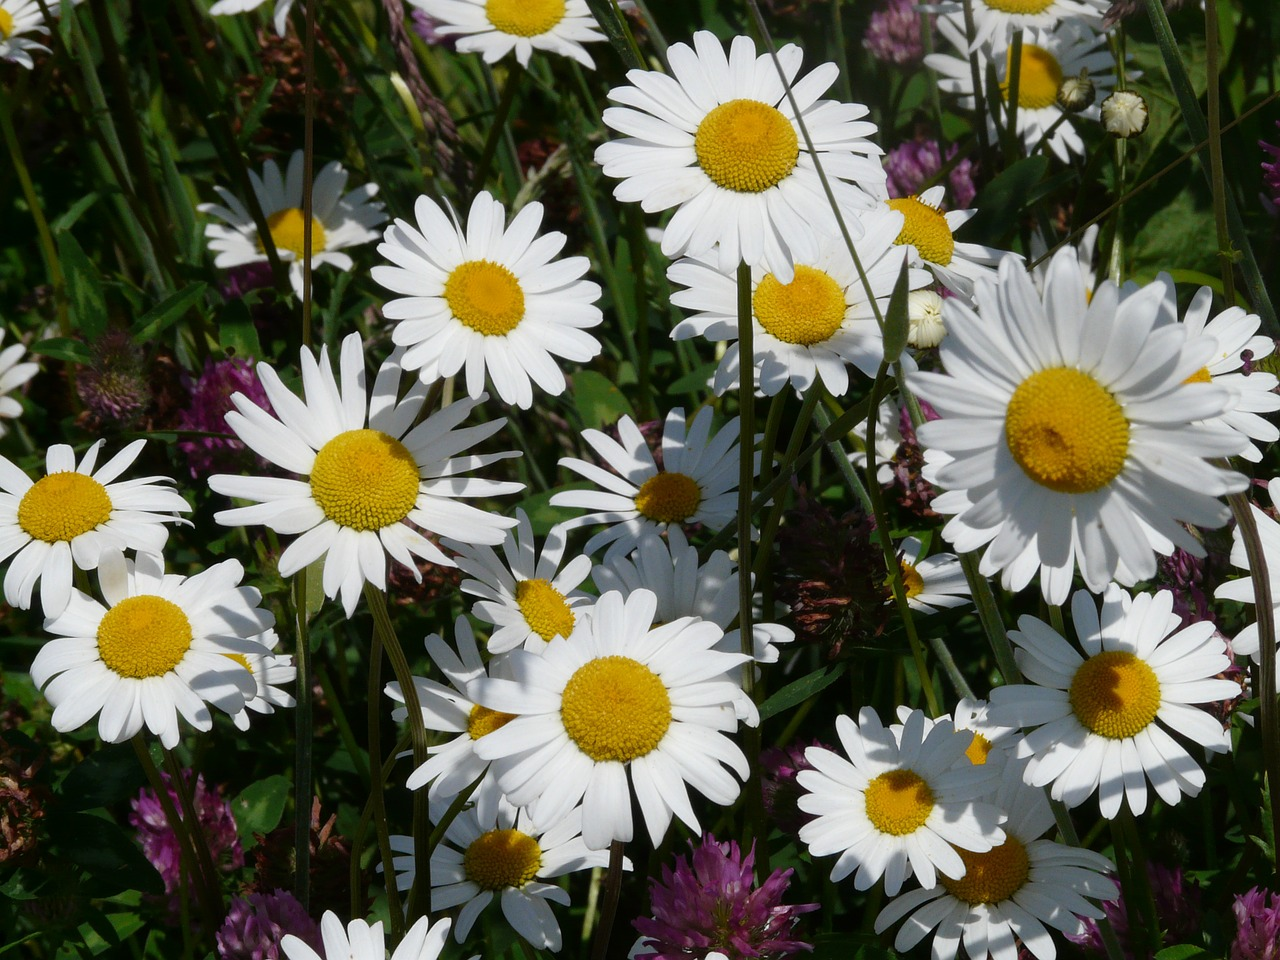 meadows margerite leucanthemum vulgare flower free photo